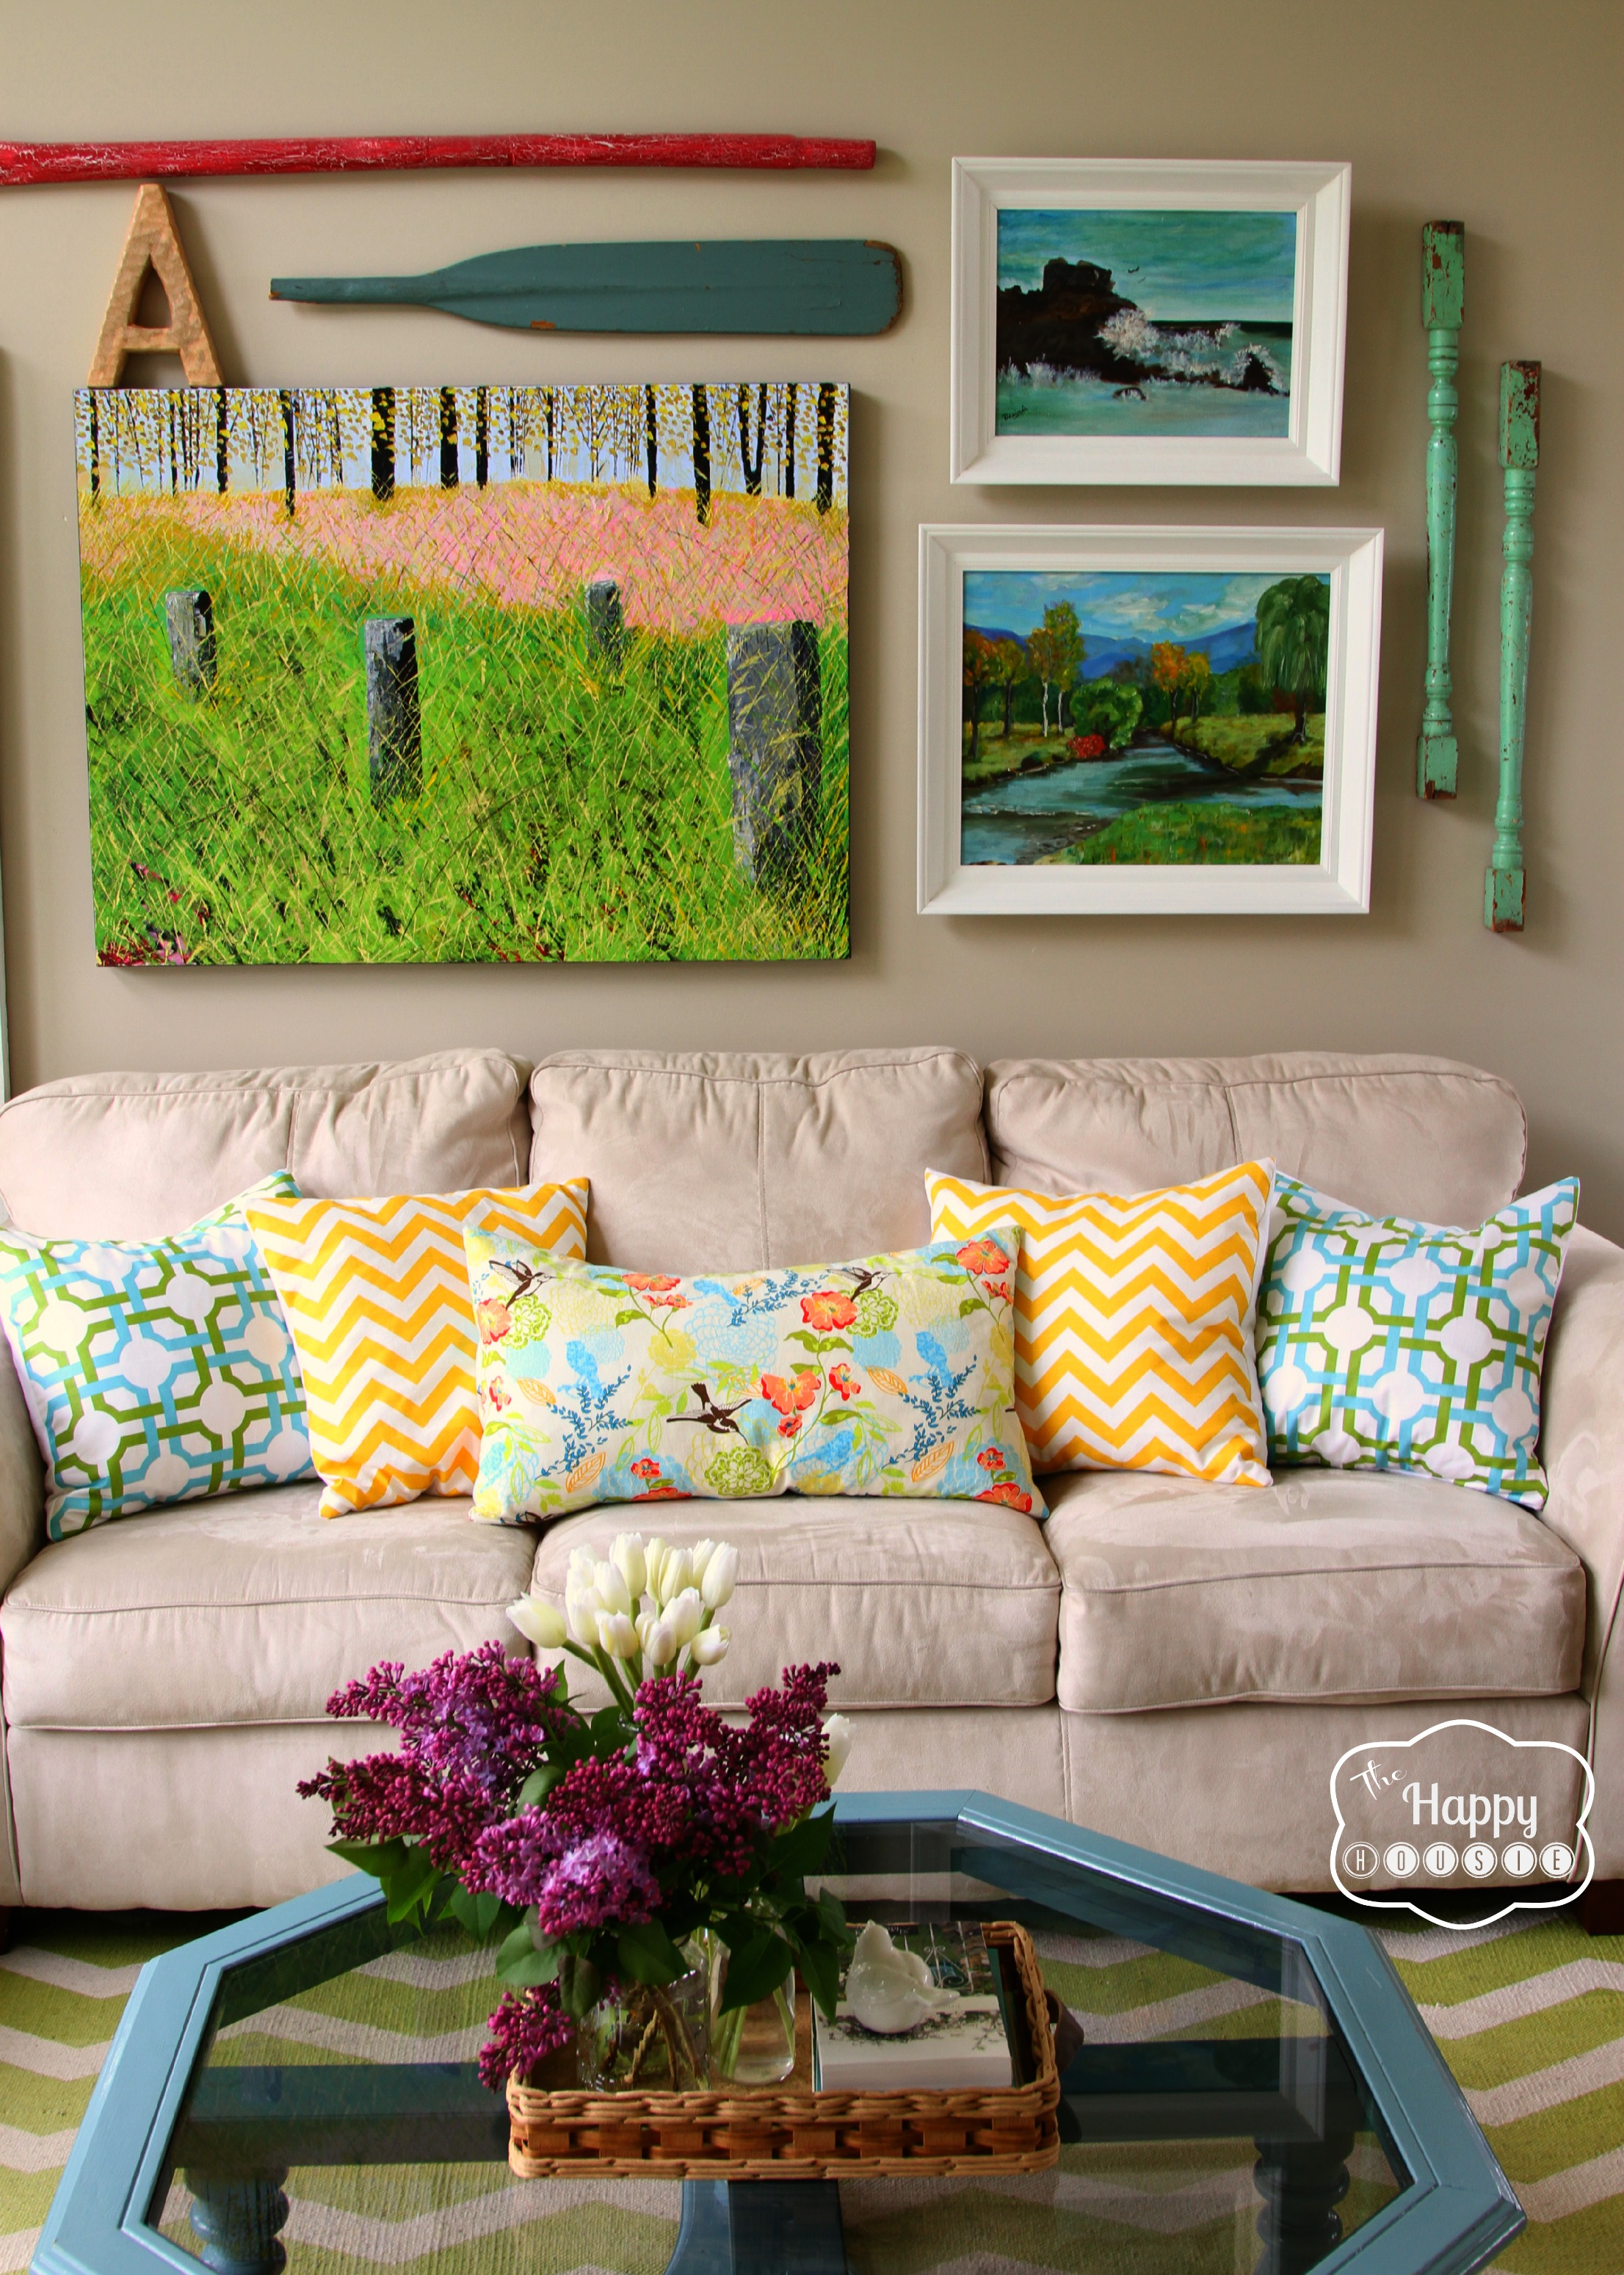 8-Spring-Changes-in-the-Living-Room-at-thehappyhousie